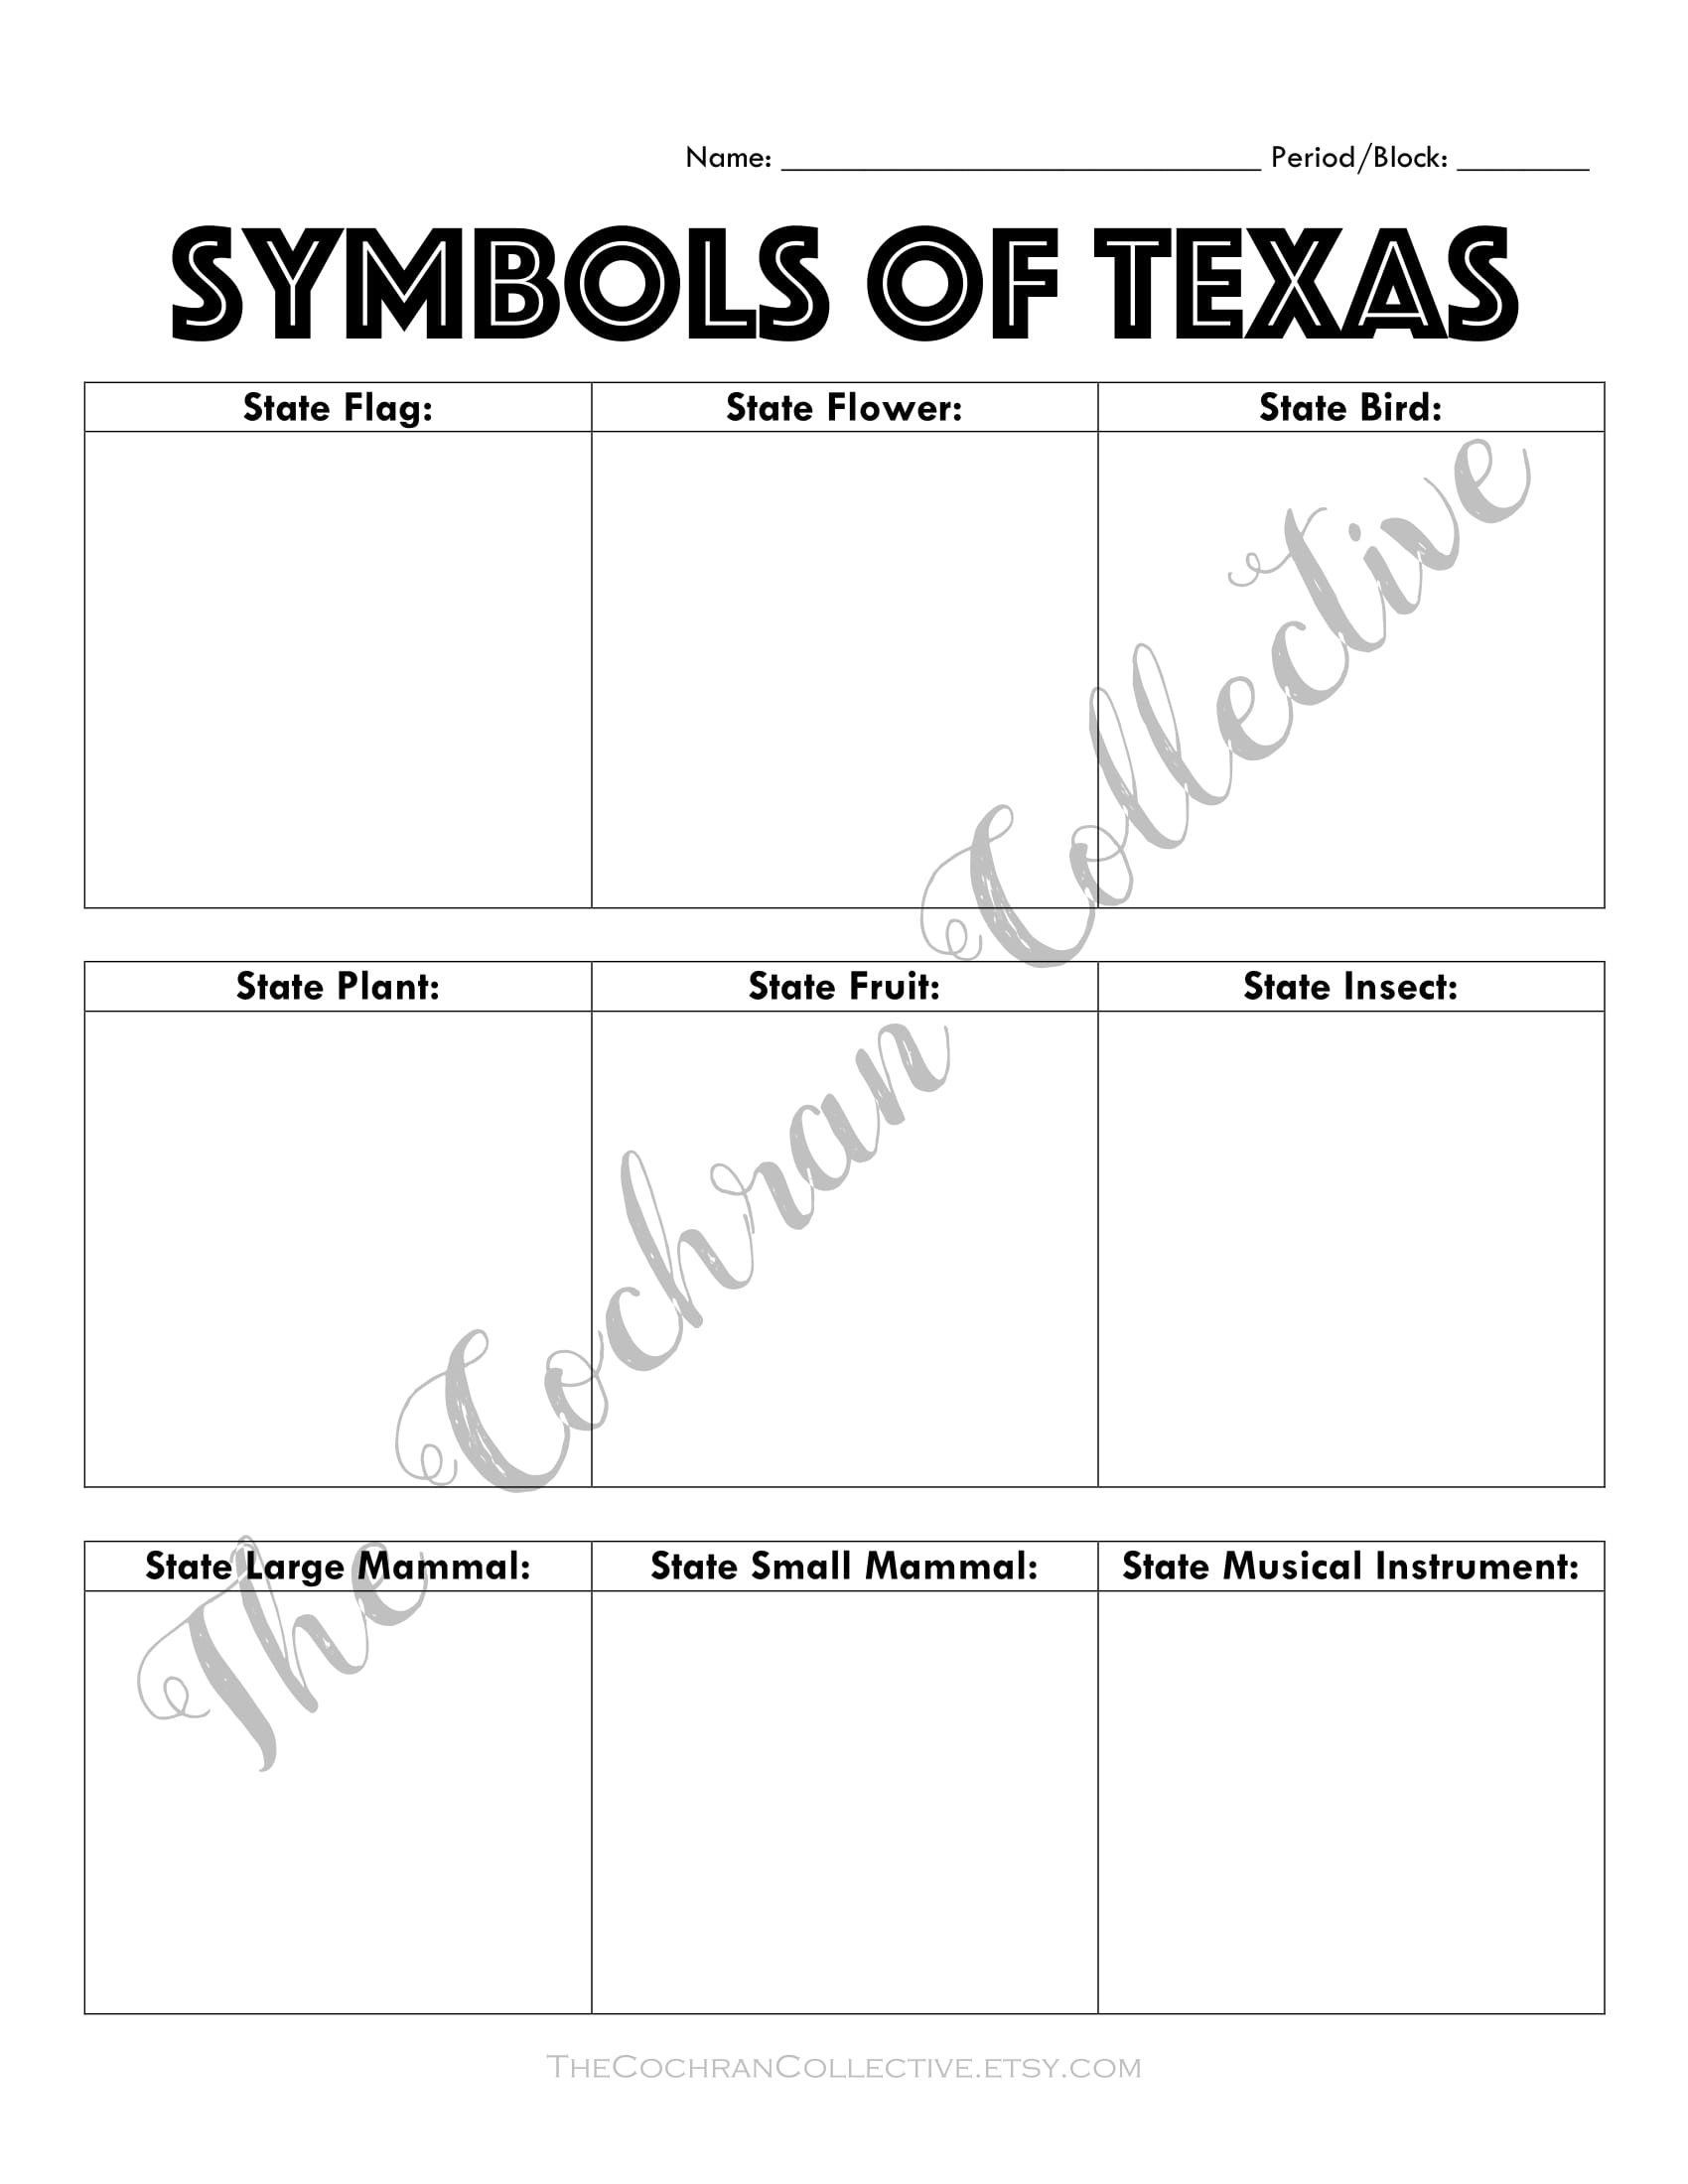 7th Grade Texas History Worksheets Texas State Symbols Worksheet Printable Texas History